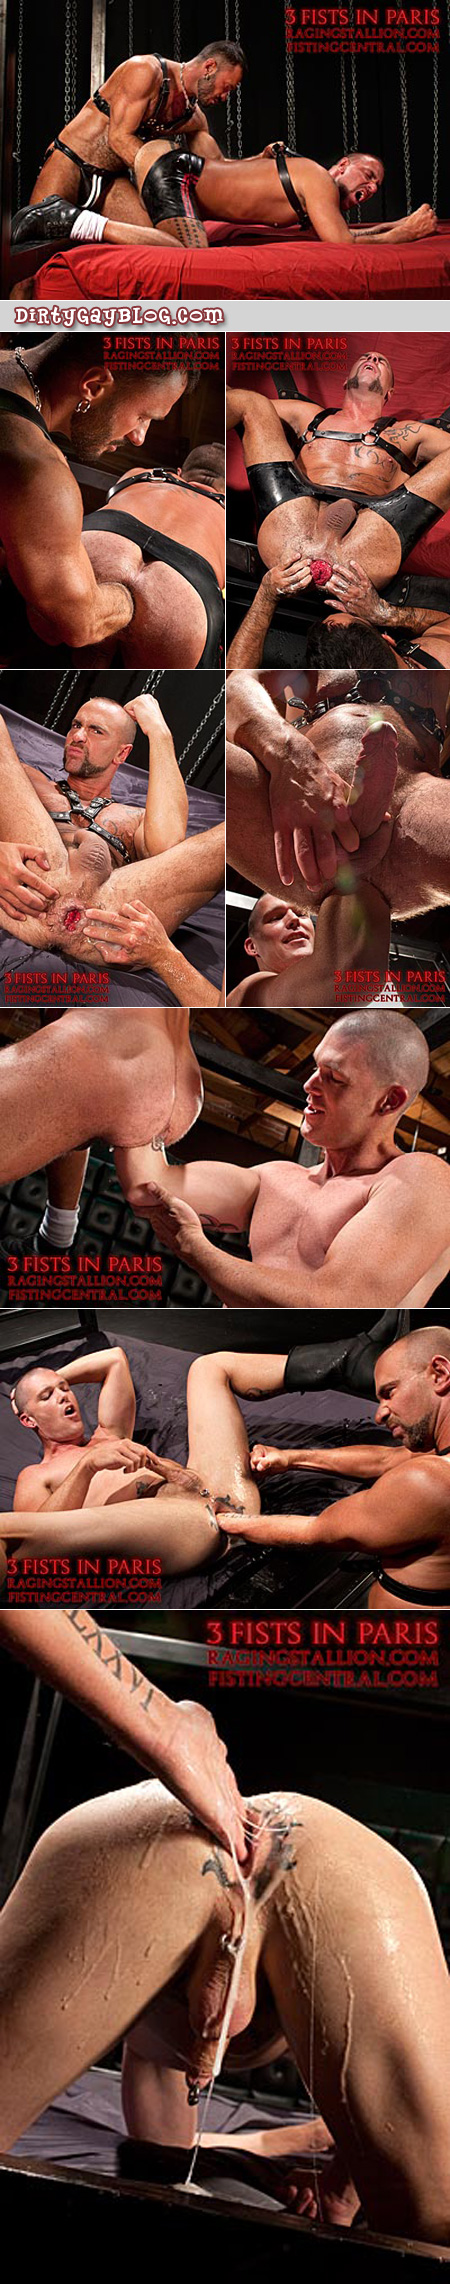 Male anal fisting, featuring leather, lube and lust.